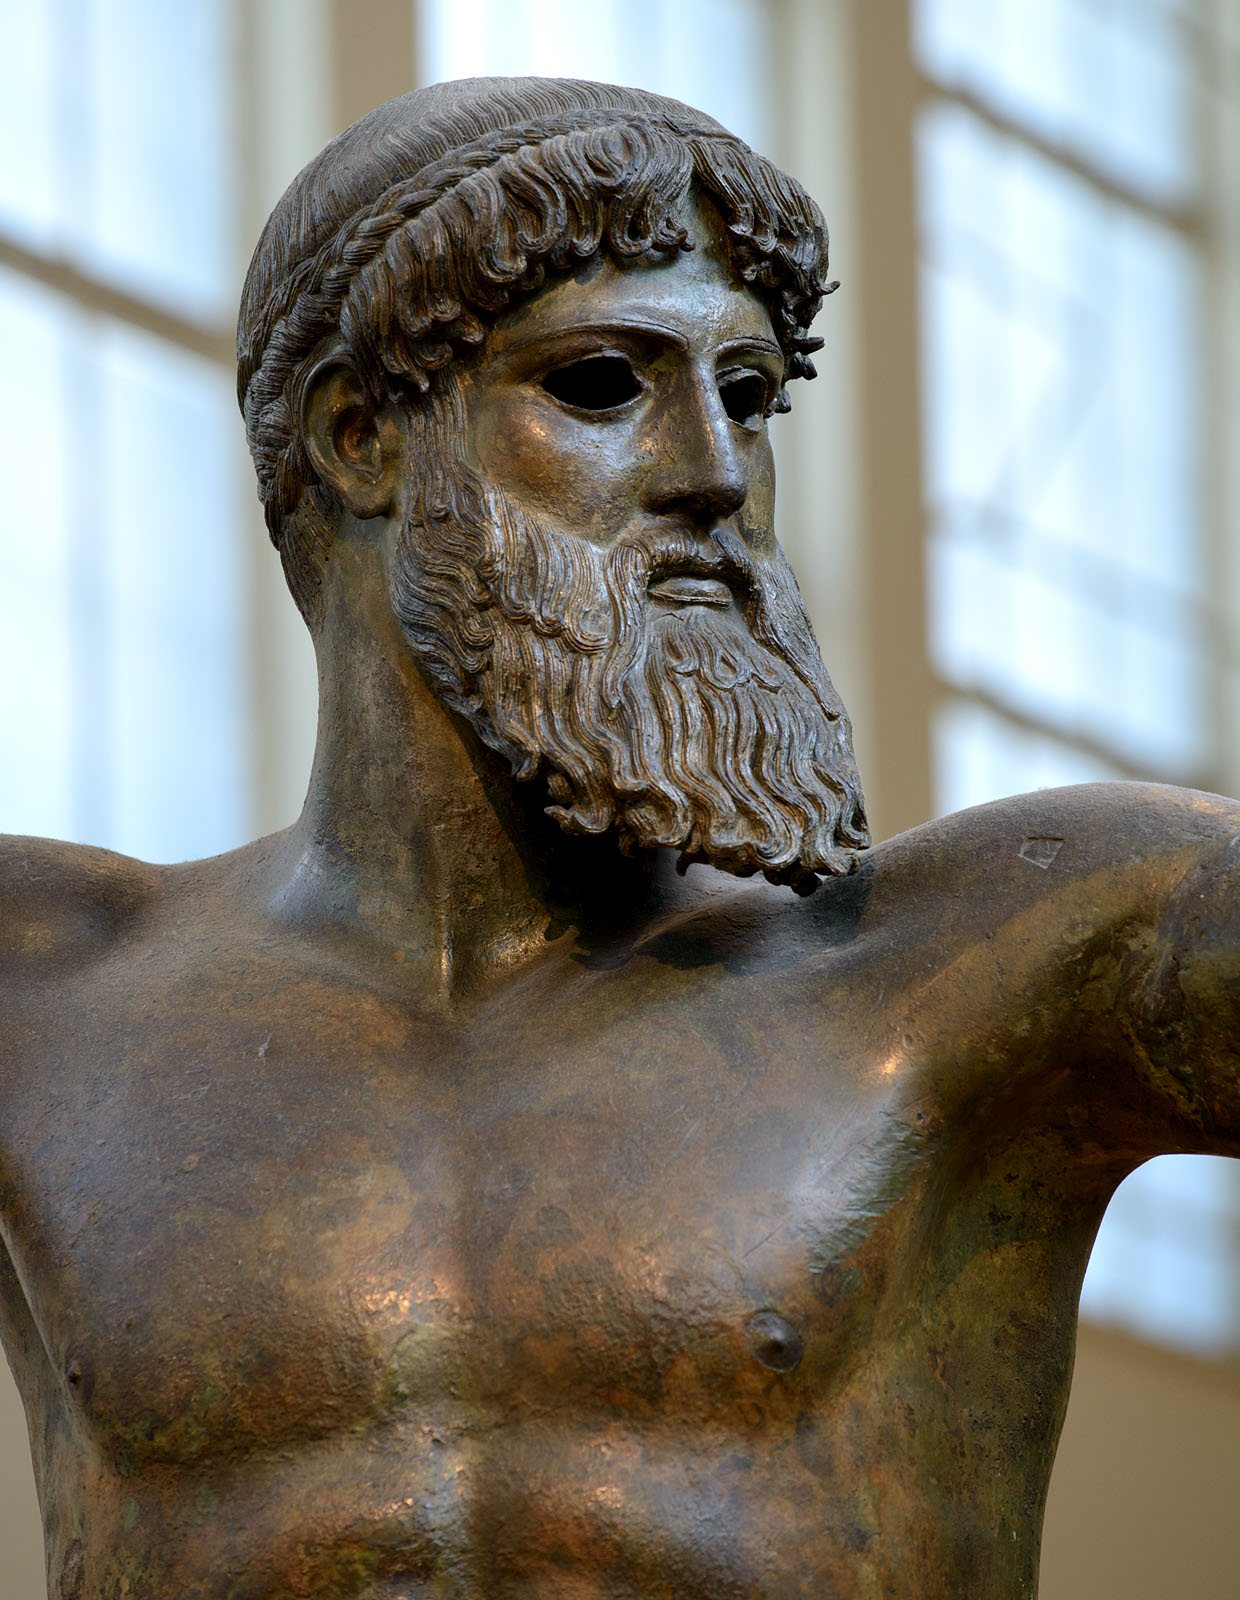 Bronze statue of Zeus or Poseidon. Bronze. Ca. 460 BCE. Inv. No. X 15161. Athens, National Archaeological Museum